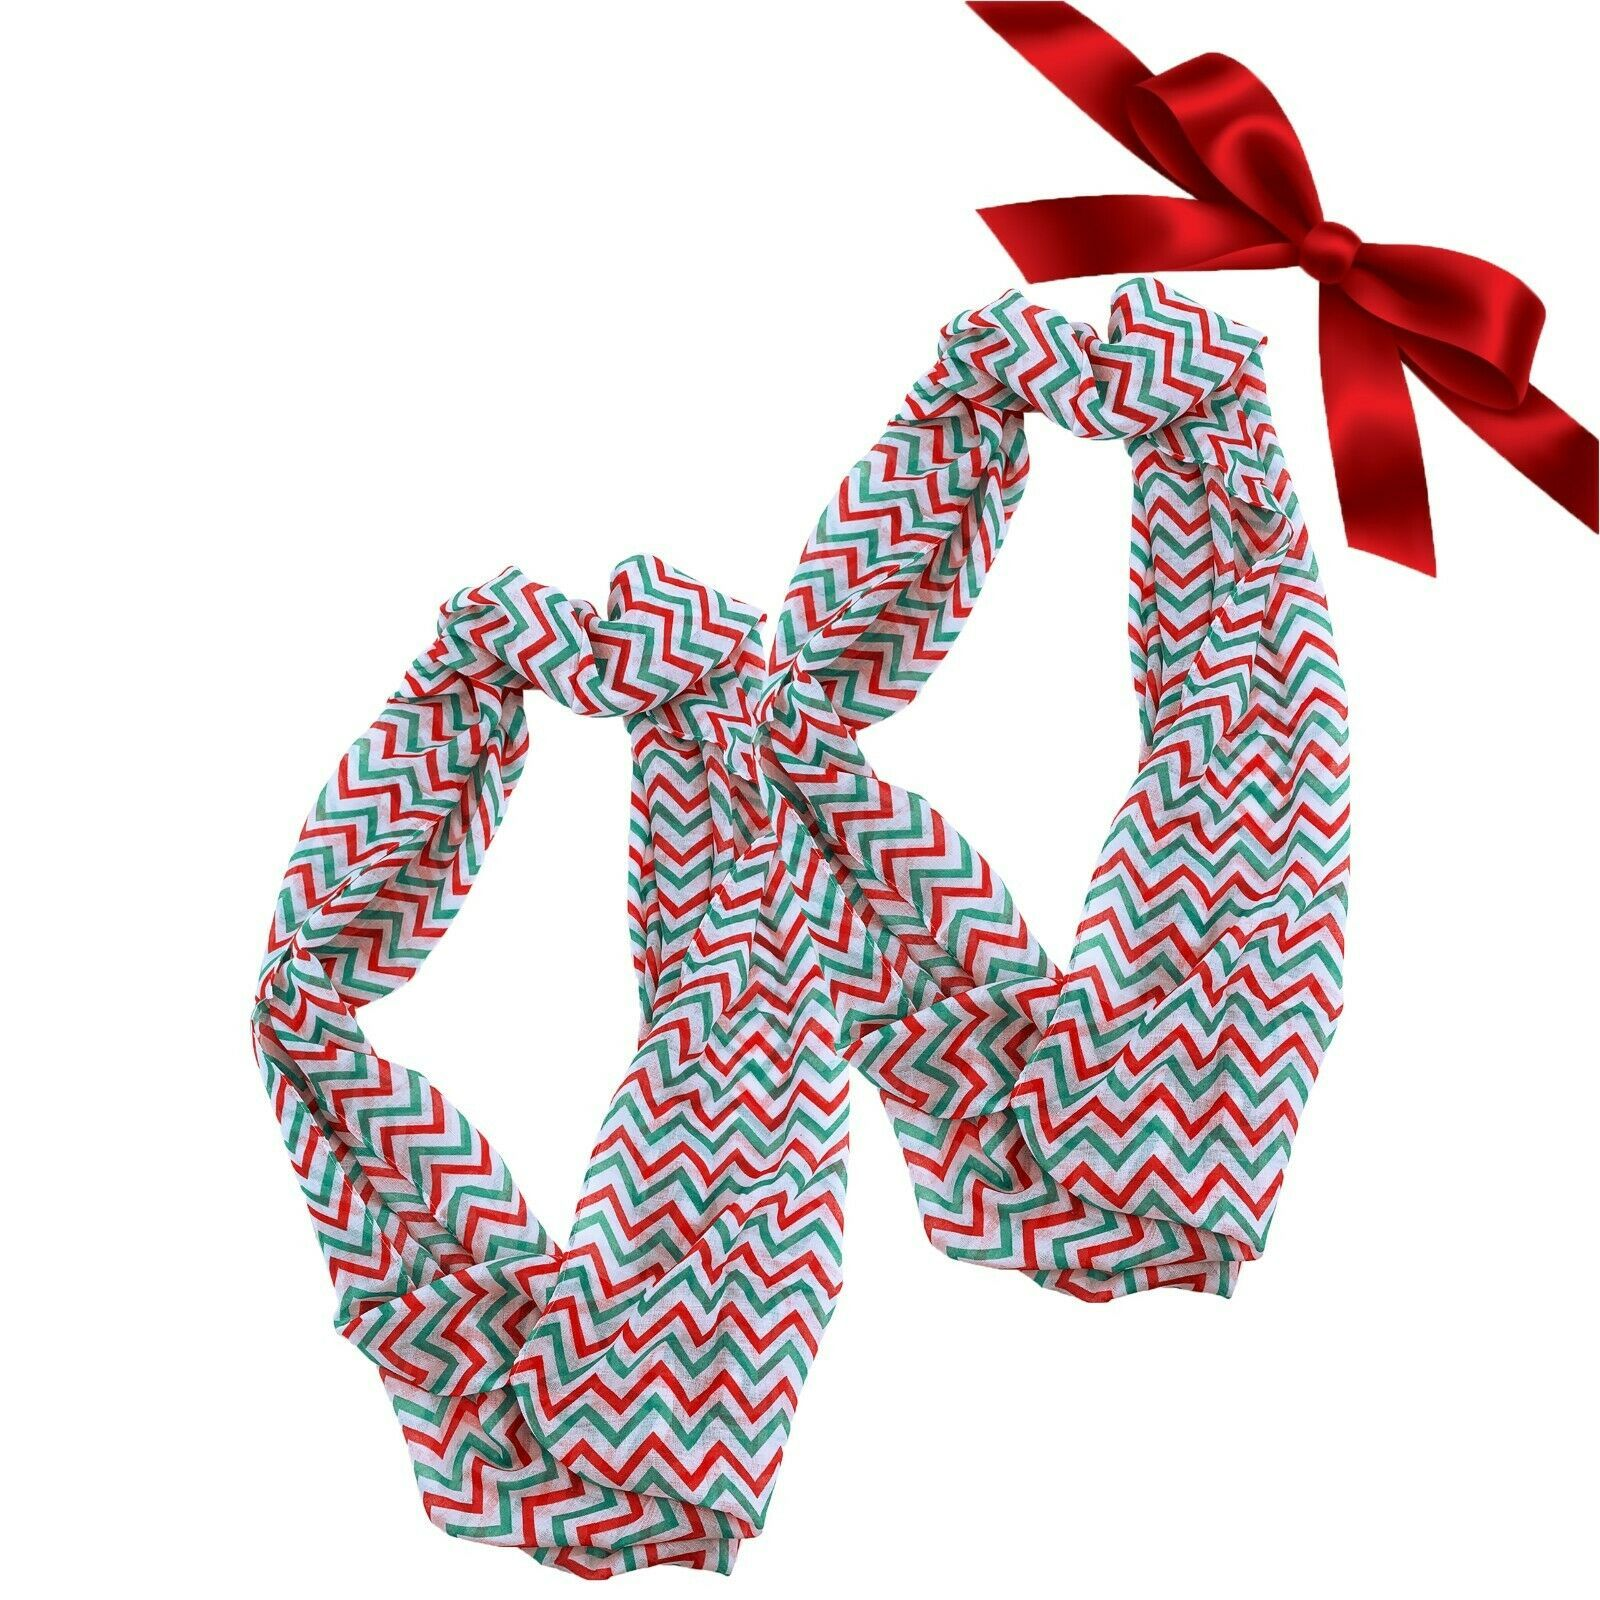 Primary image for 2pk Christmas Chevron Striped Sheer Infinity Scarves Gift Set Shawl Wraps